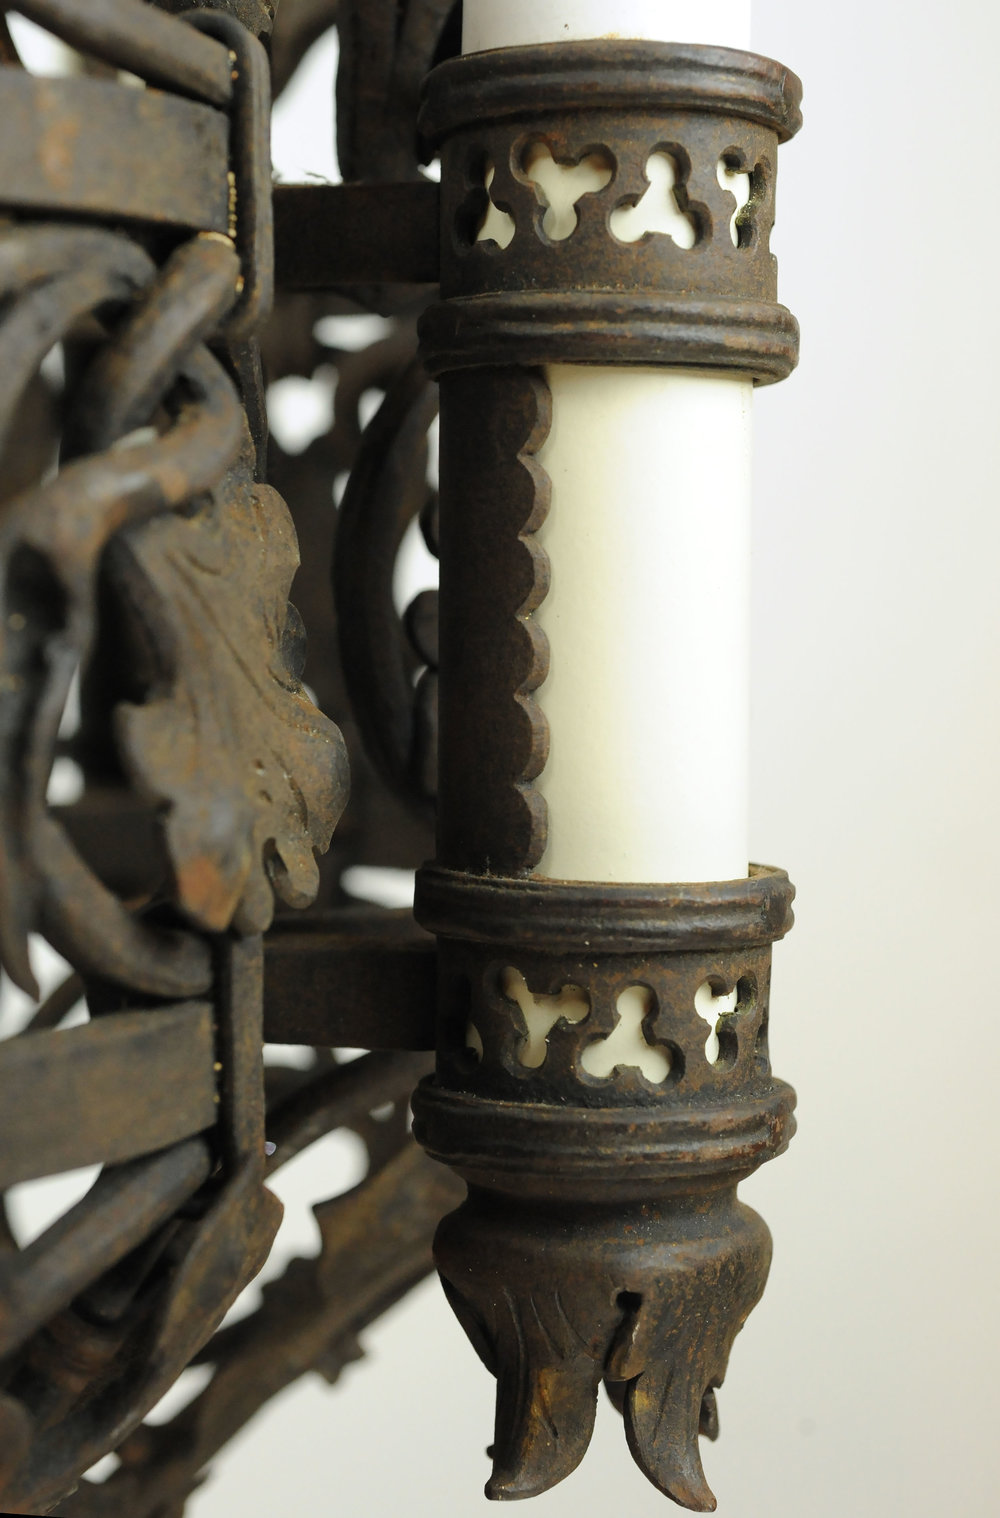 47170-tudor-4-arm-chandelier-candle-holder-detail.jpg